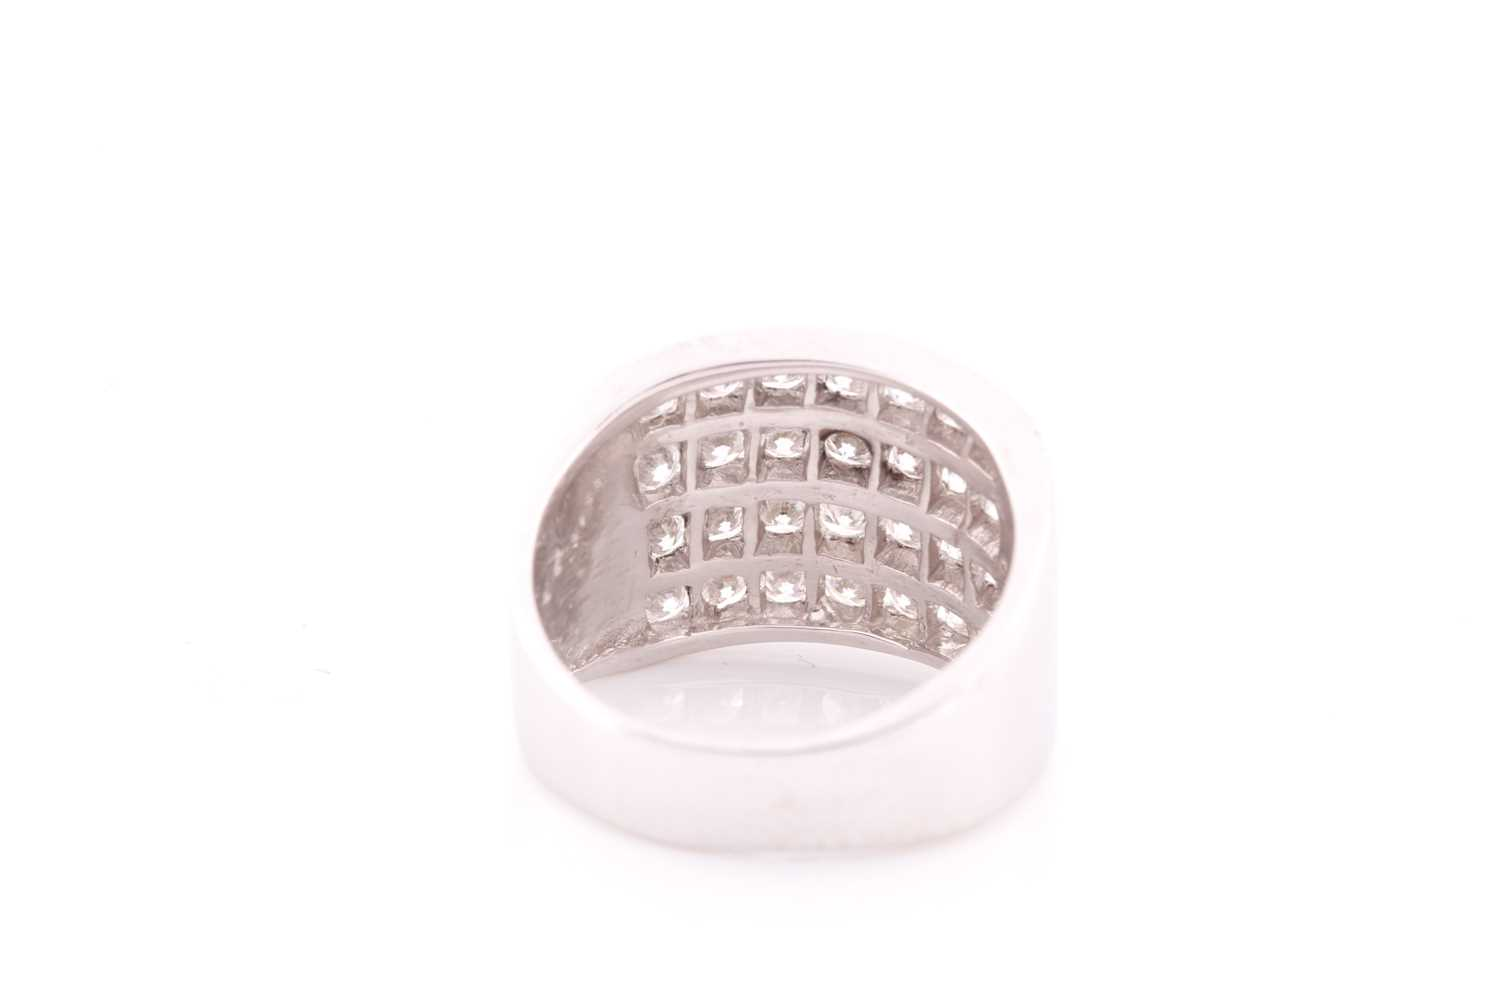 A diamond band ring, channel-set with four rows of round brilliant-cut diamonds of approximately 2. - Image 2 of 4